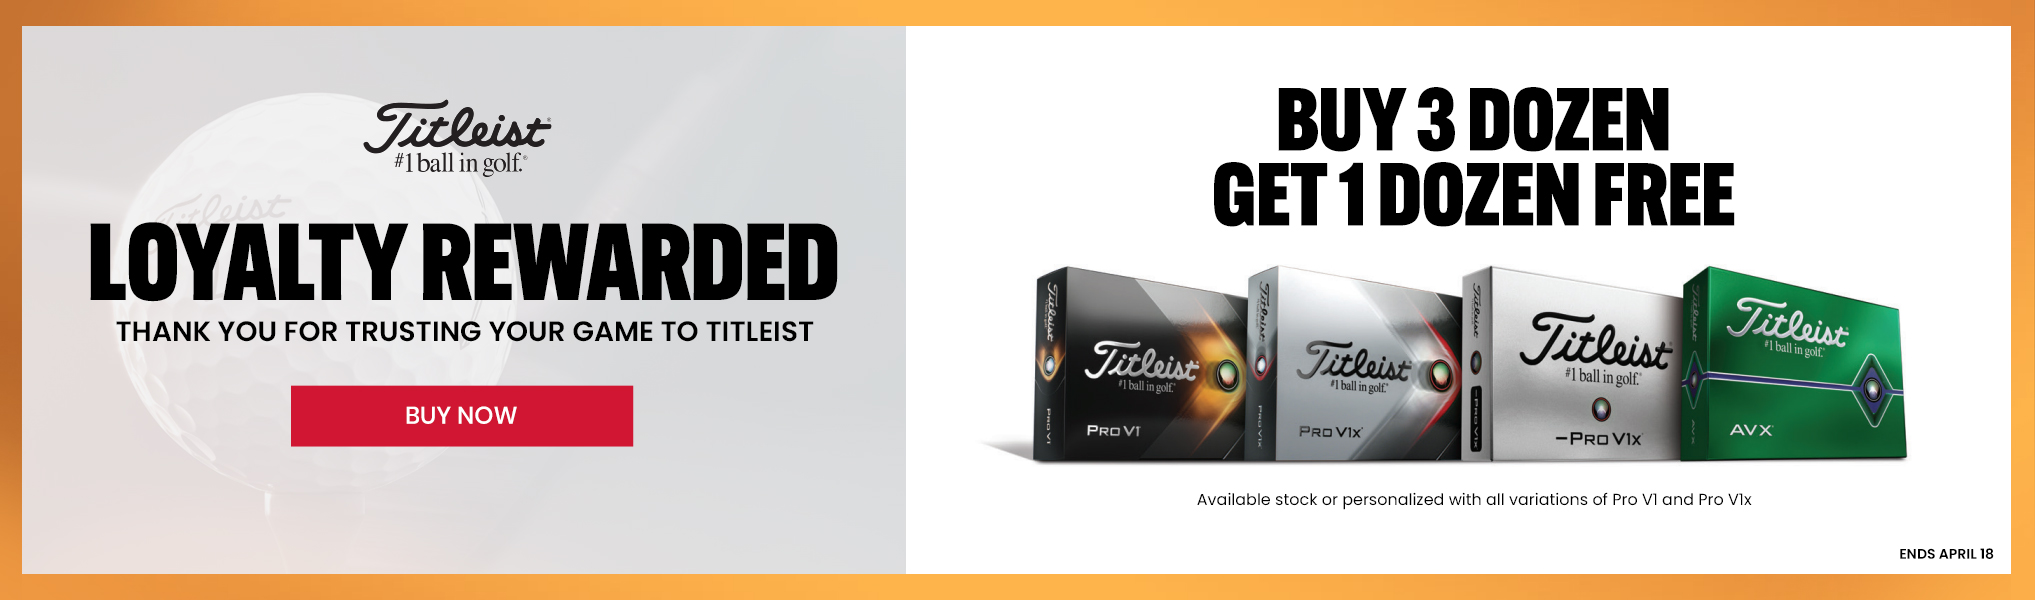 Titleist loyalty rewarded, buy 3 dozen get 1 dozen free for pro v1 and prov1x